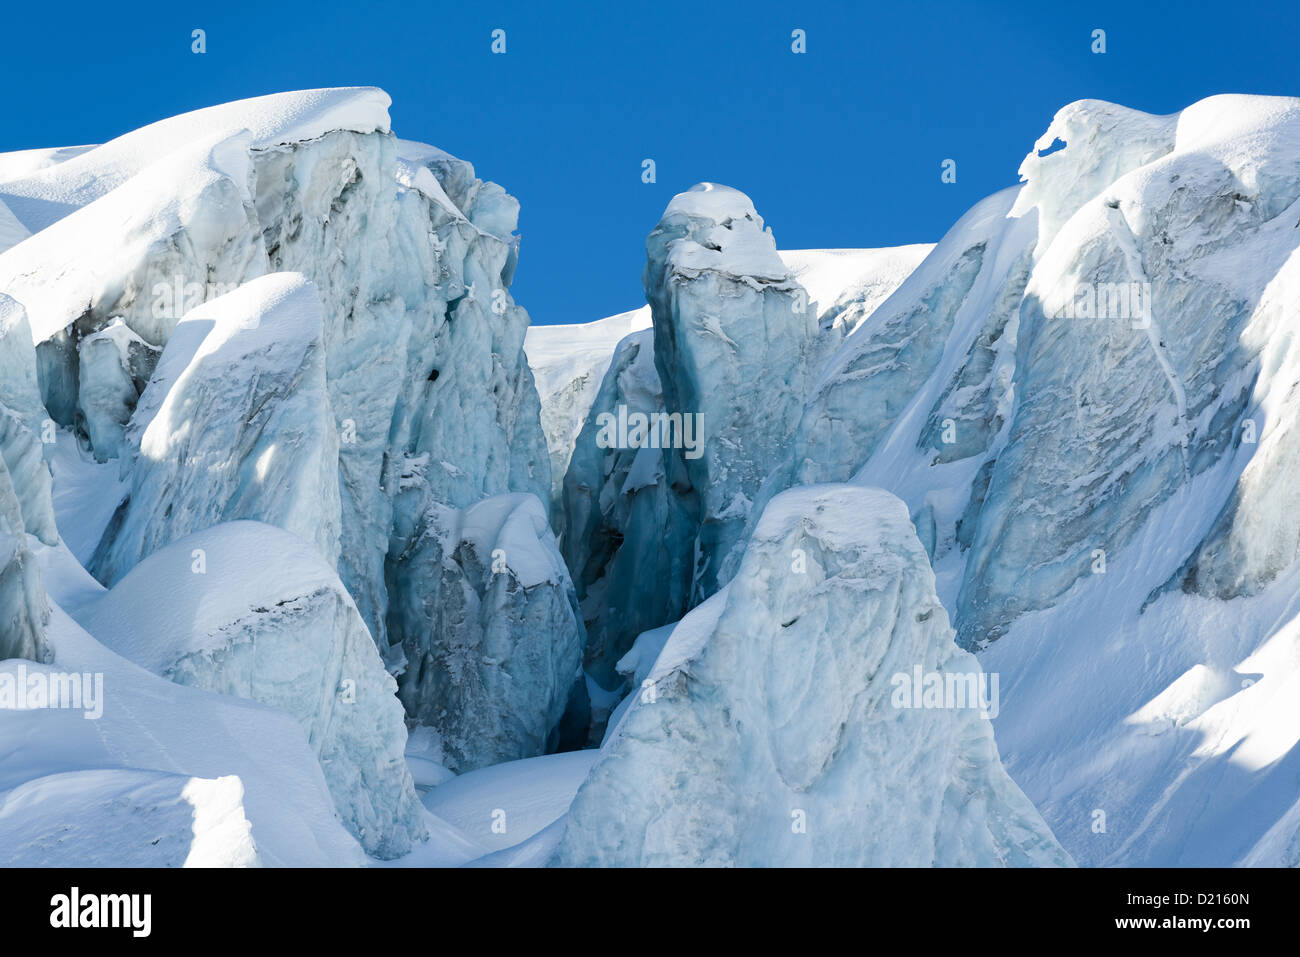 glacial crevasse and ice structures in a glacier above saas fee, valais, switzerland - Stock Image